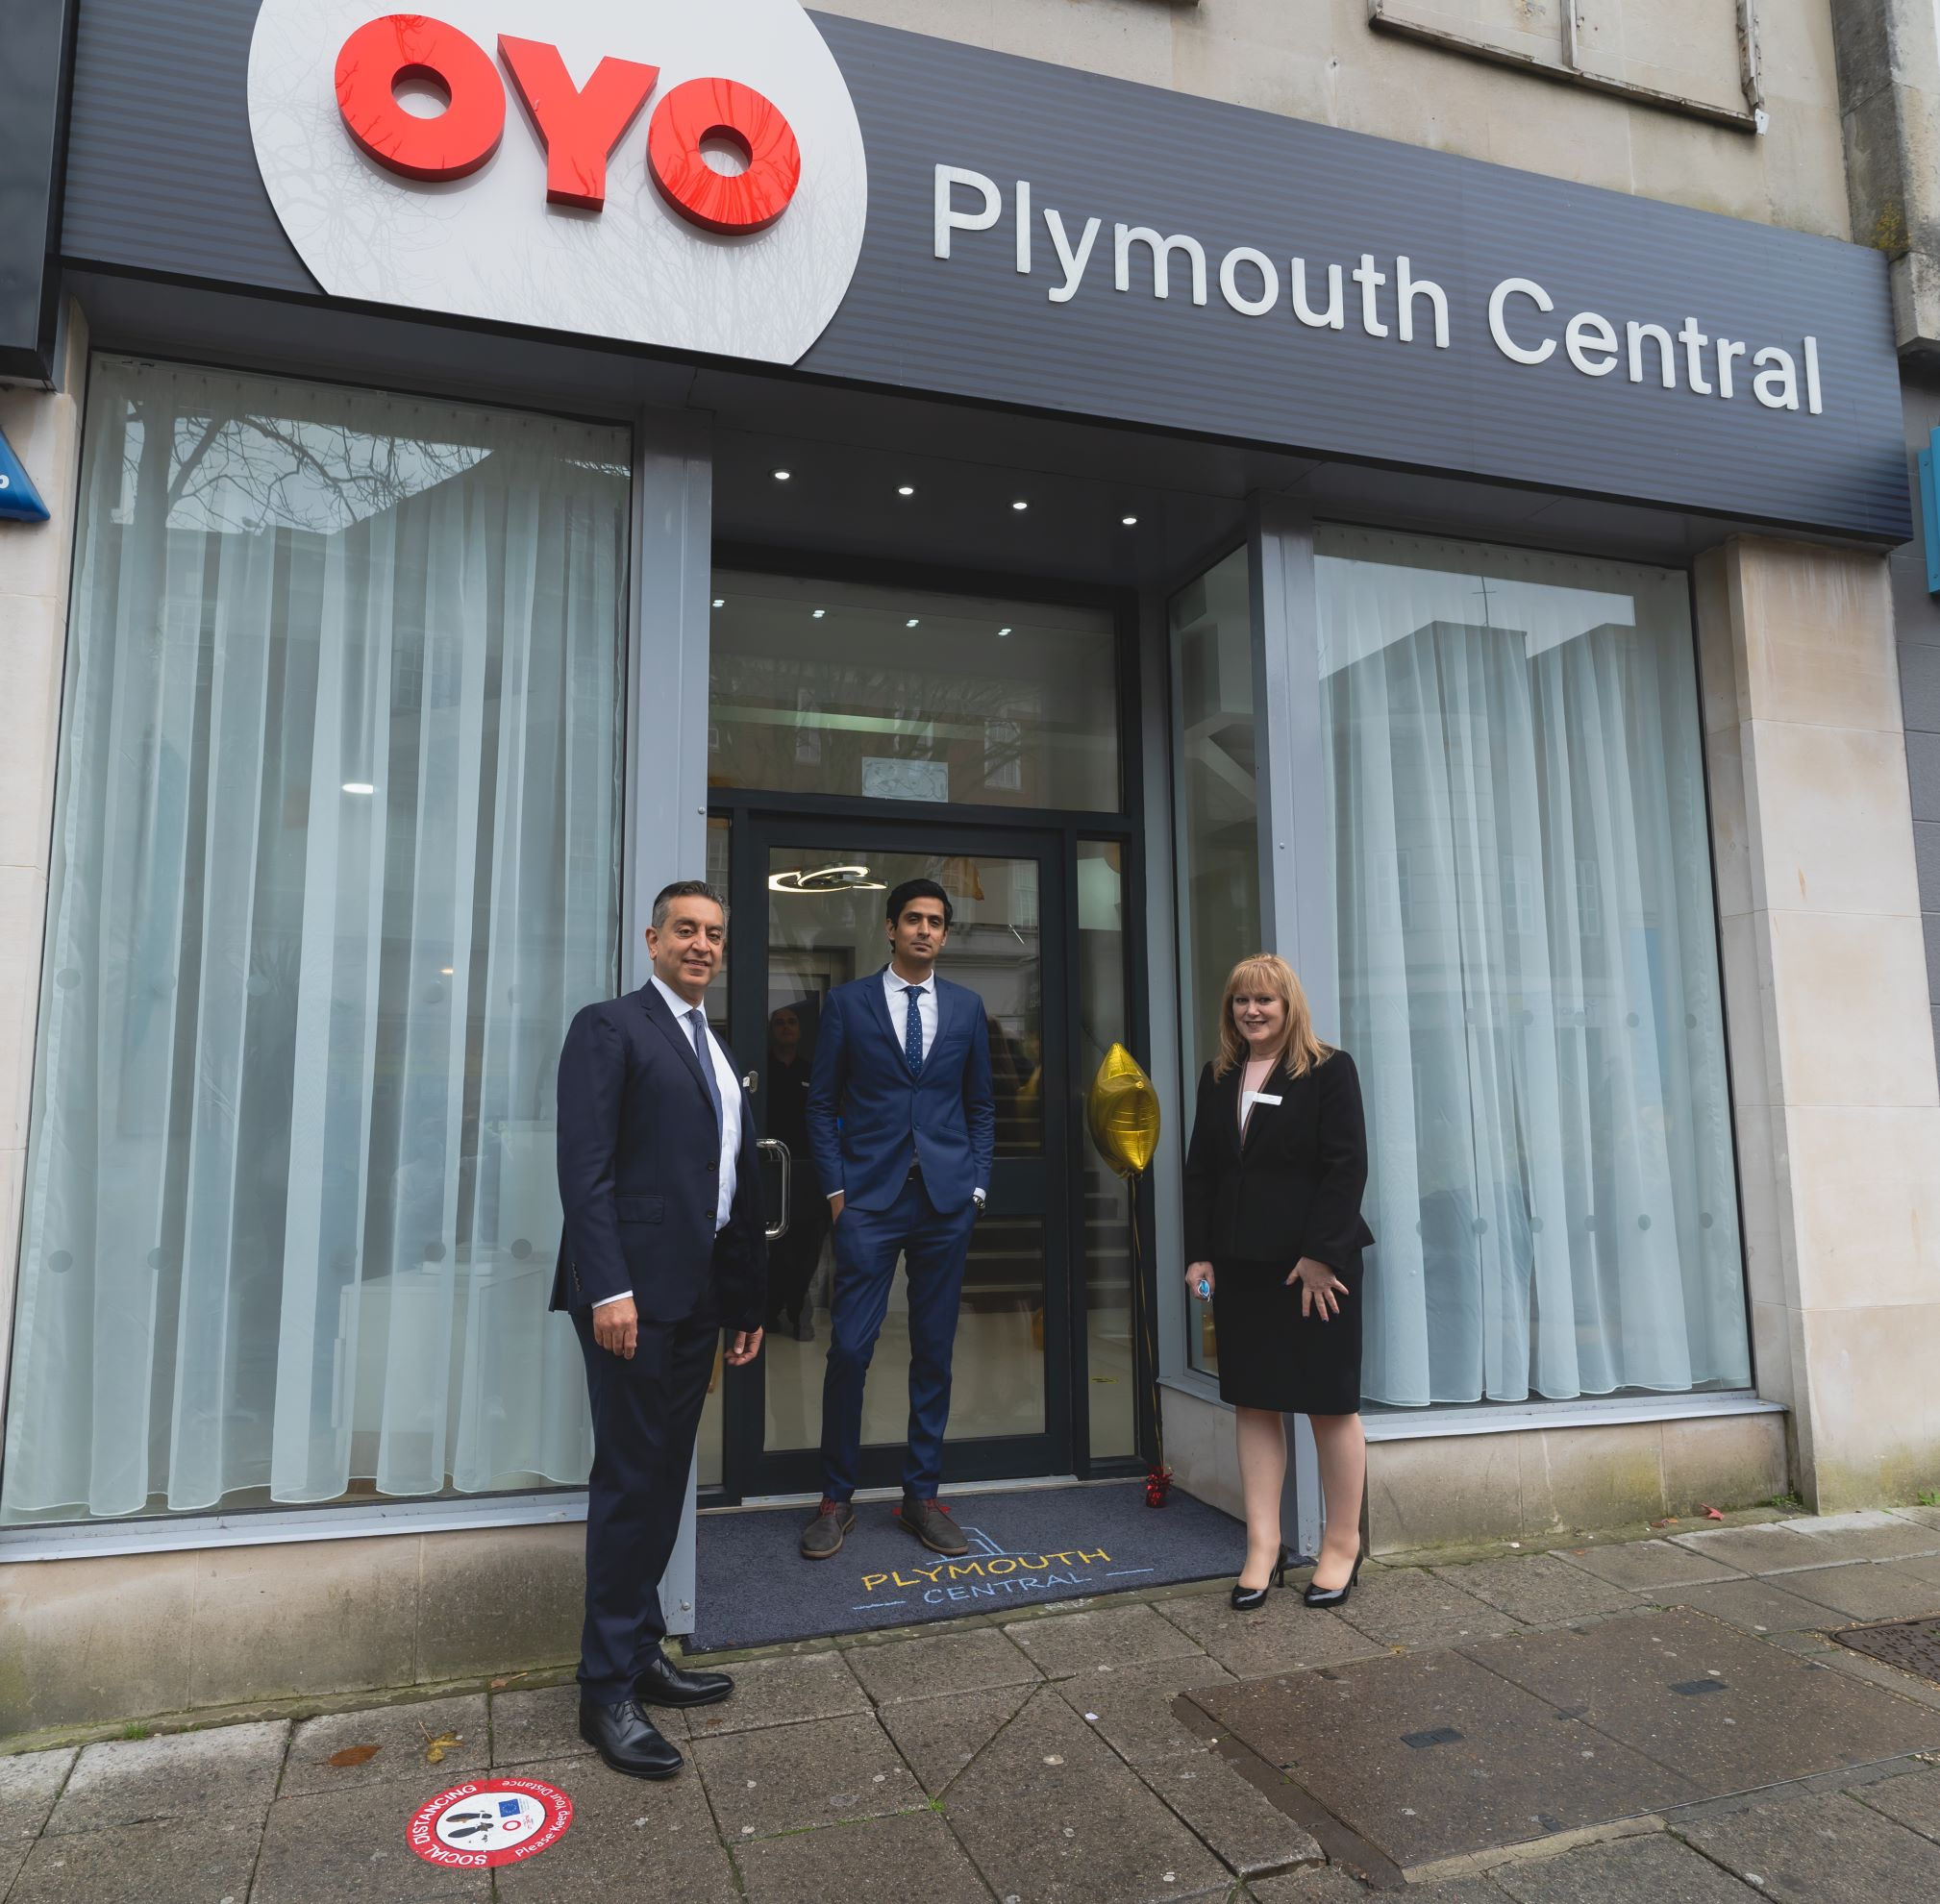 New hotel opens in Plymouth City Centre